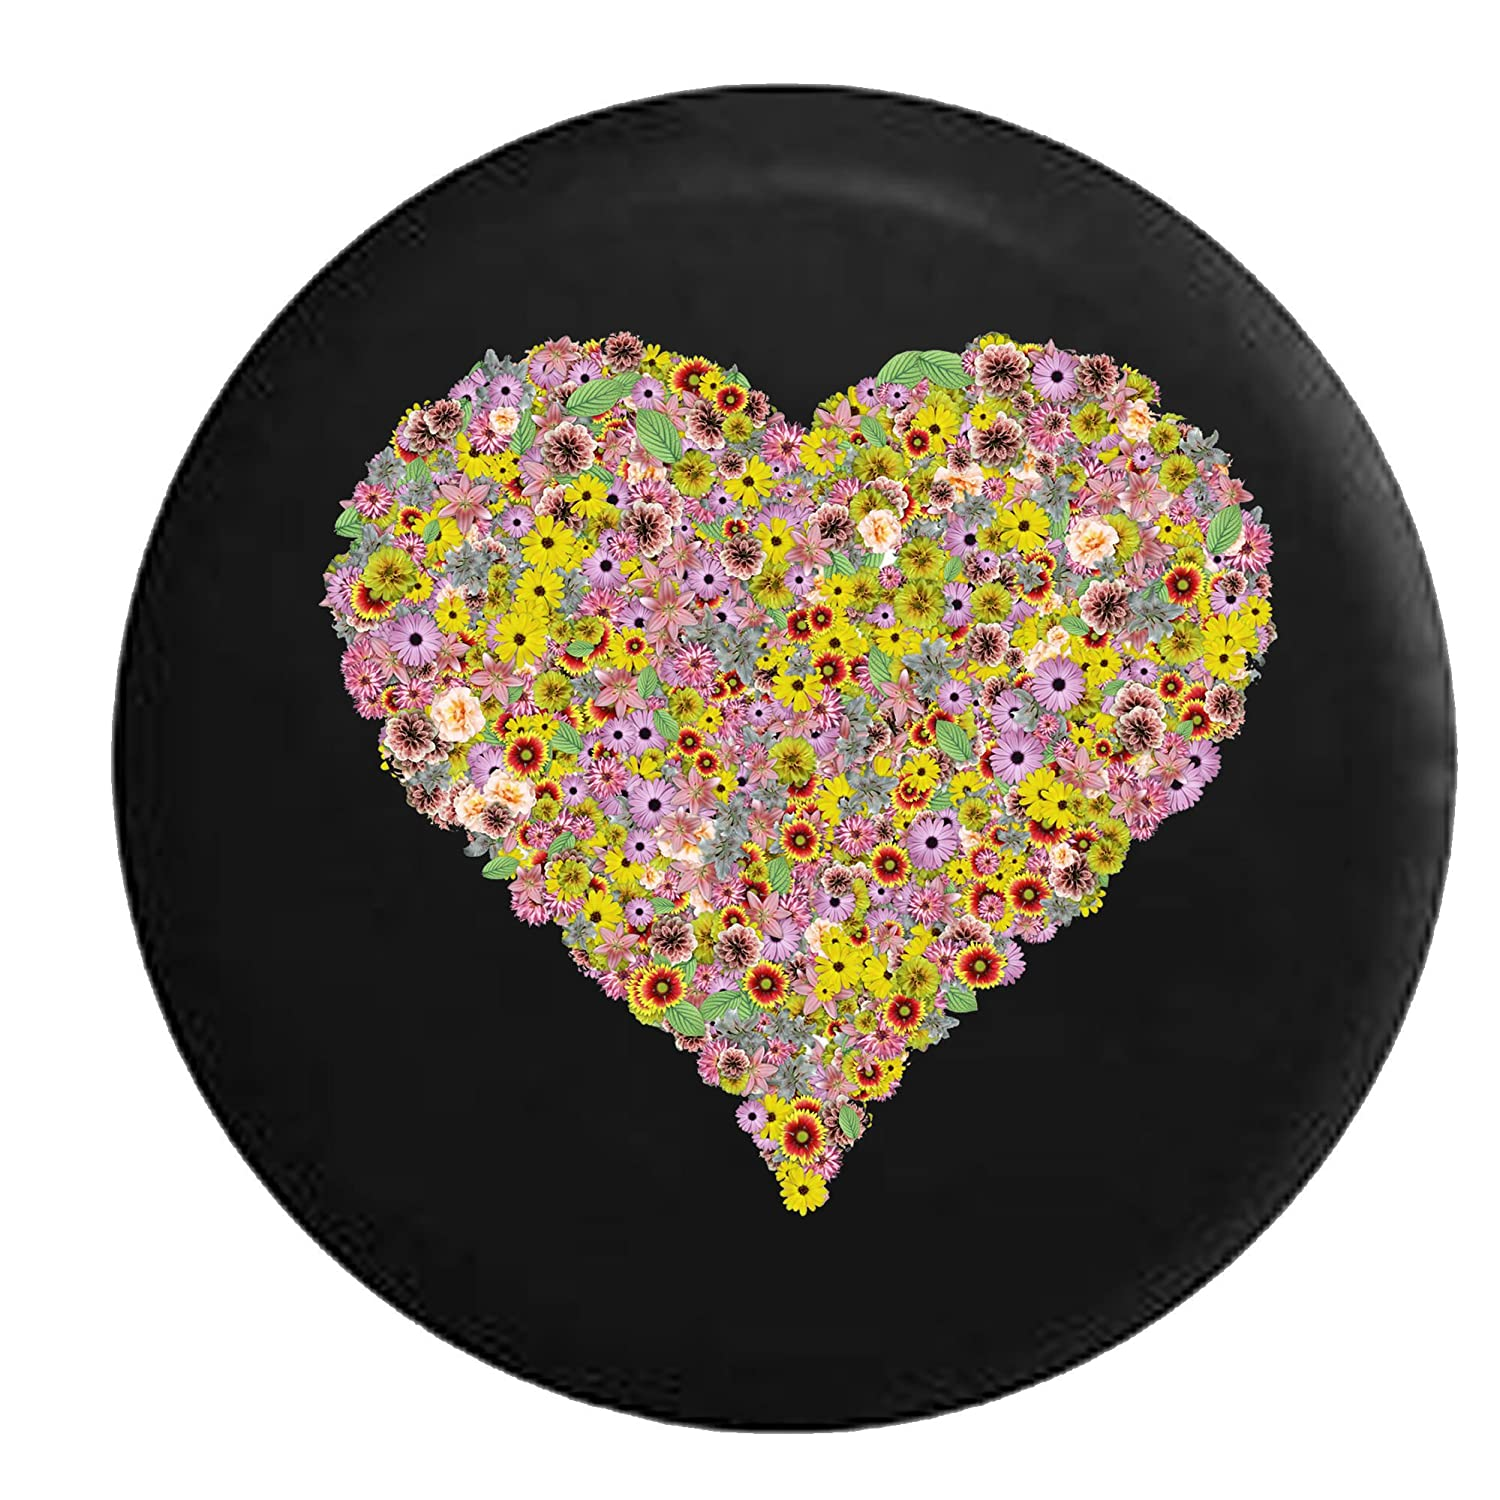 Heart of Flowers Flower Bouquet Spare Jeep Wrangler Camper SUV Tire Cover 30 in Silver Back Covers